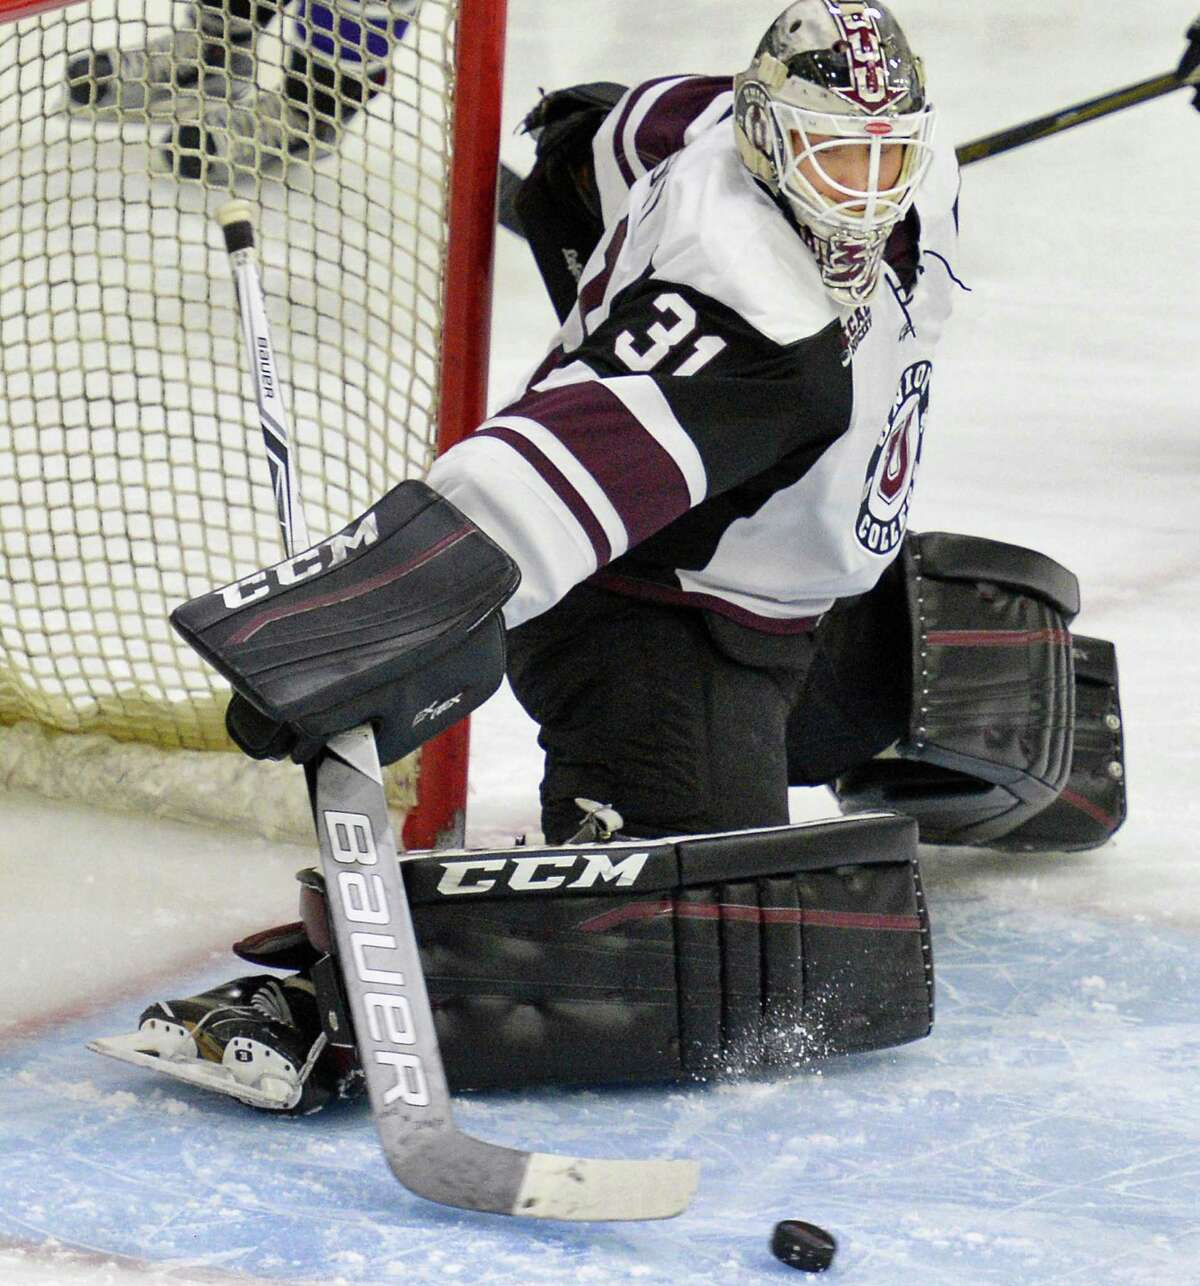 Union goalie #31 Jake Kupsky blocks a shot during Saturday's game against Niagara at Messa Rink Oct. 22, 2016 in Schenectady, NY. (John Carl D'Annibale / Times Union)